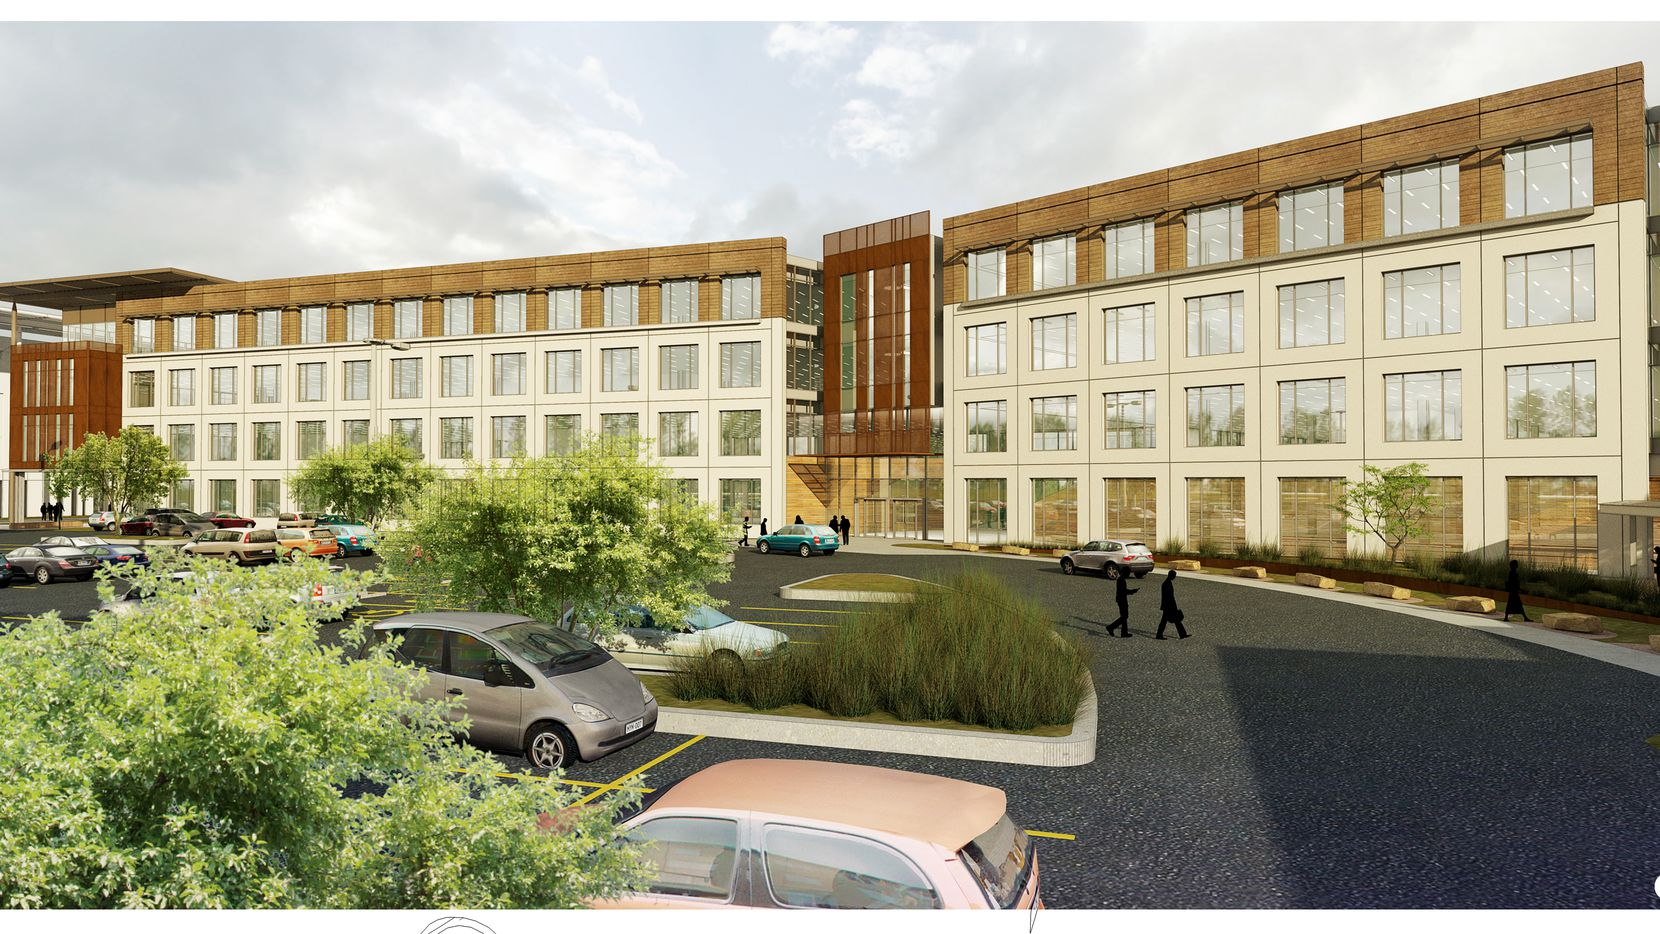 AmerisourceBergen Specialty Group will have 3,000 workers at its new Carrollton campus.